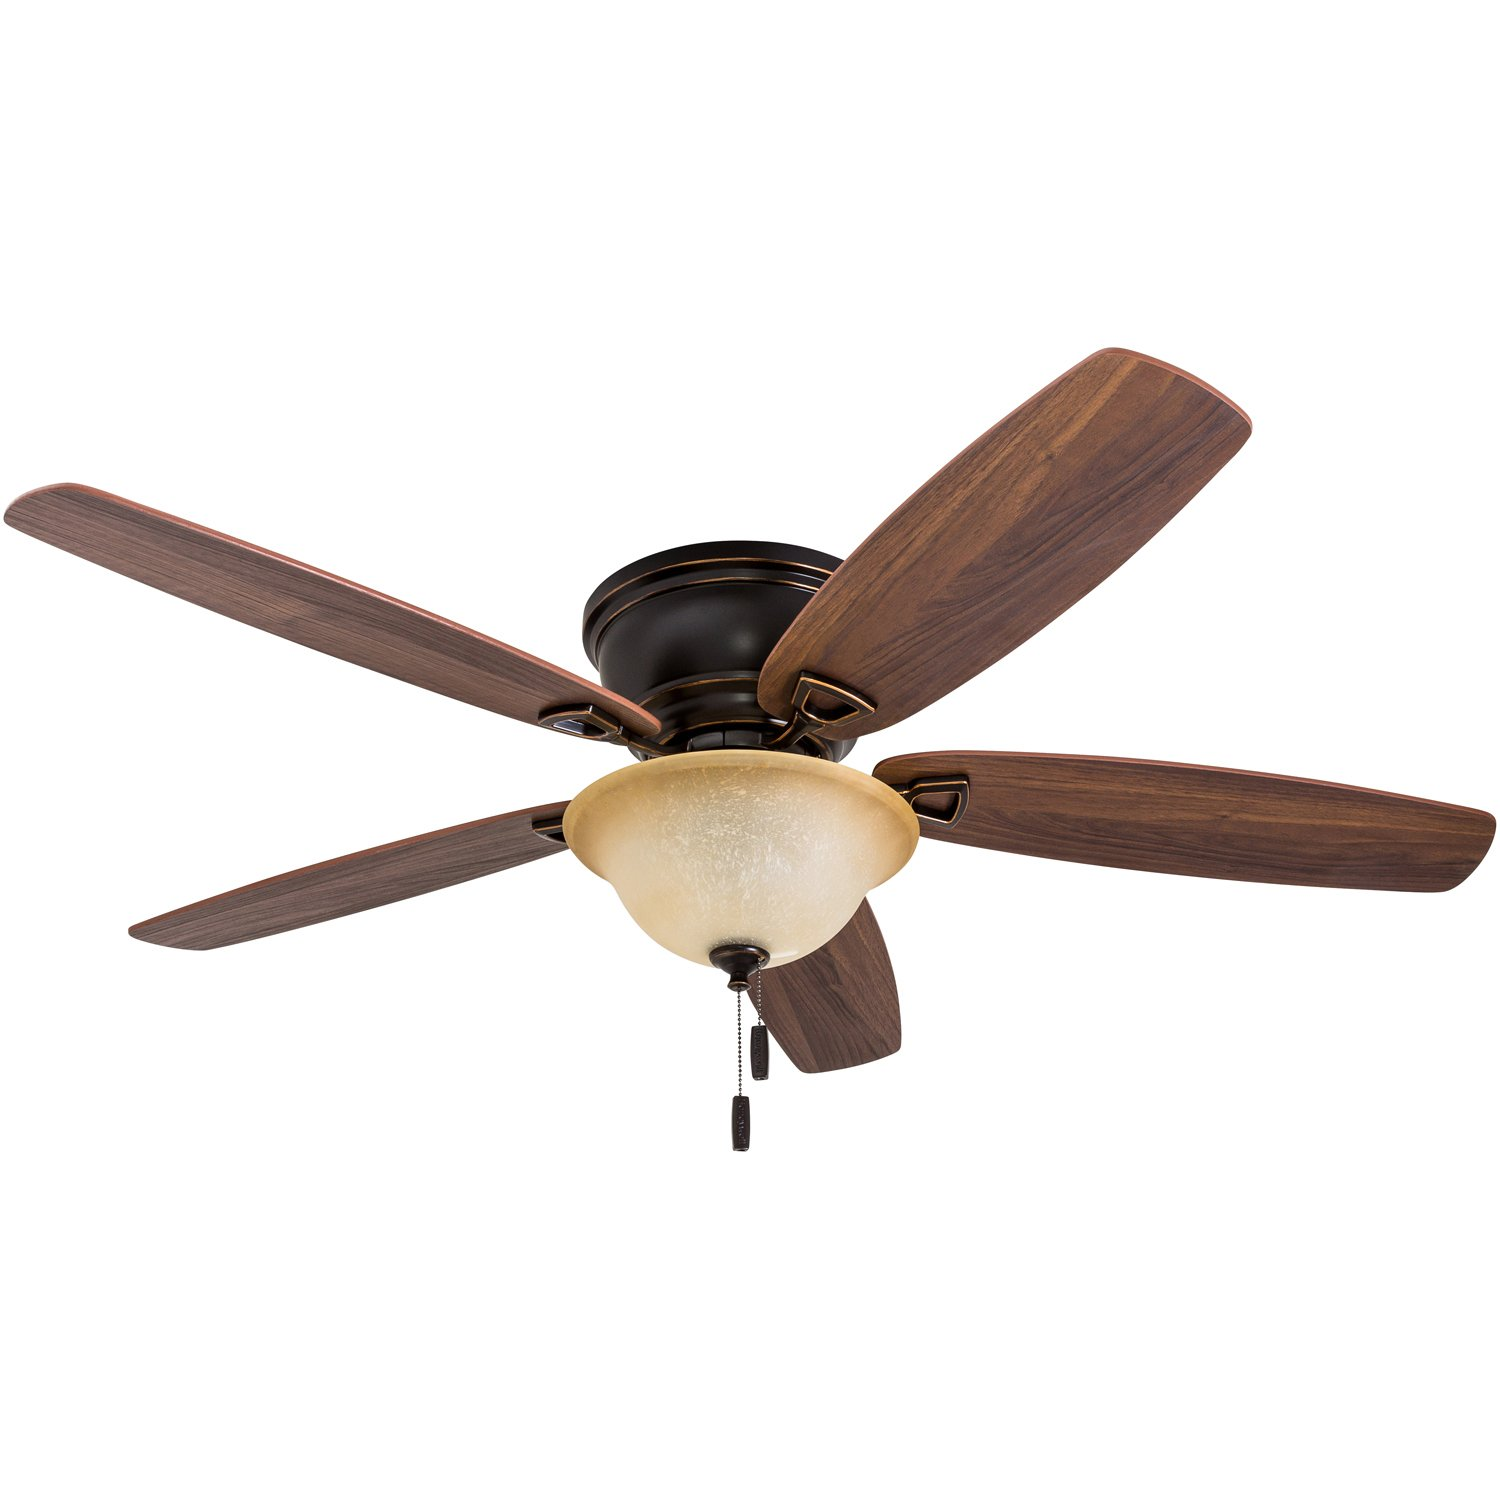 Honeywell 50517-01 Quick-2-Hang Hugger Ceiling Fan, 52'' Dimmable LED Sunset Fixture, Easy Installation Cimmeron/Ironwood Blades, Oil Rubbed Bronze